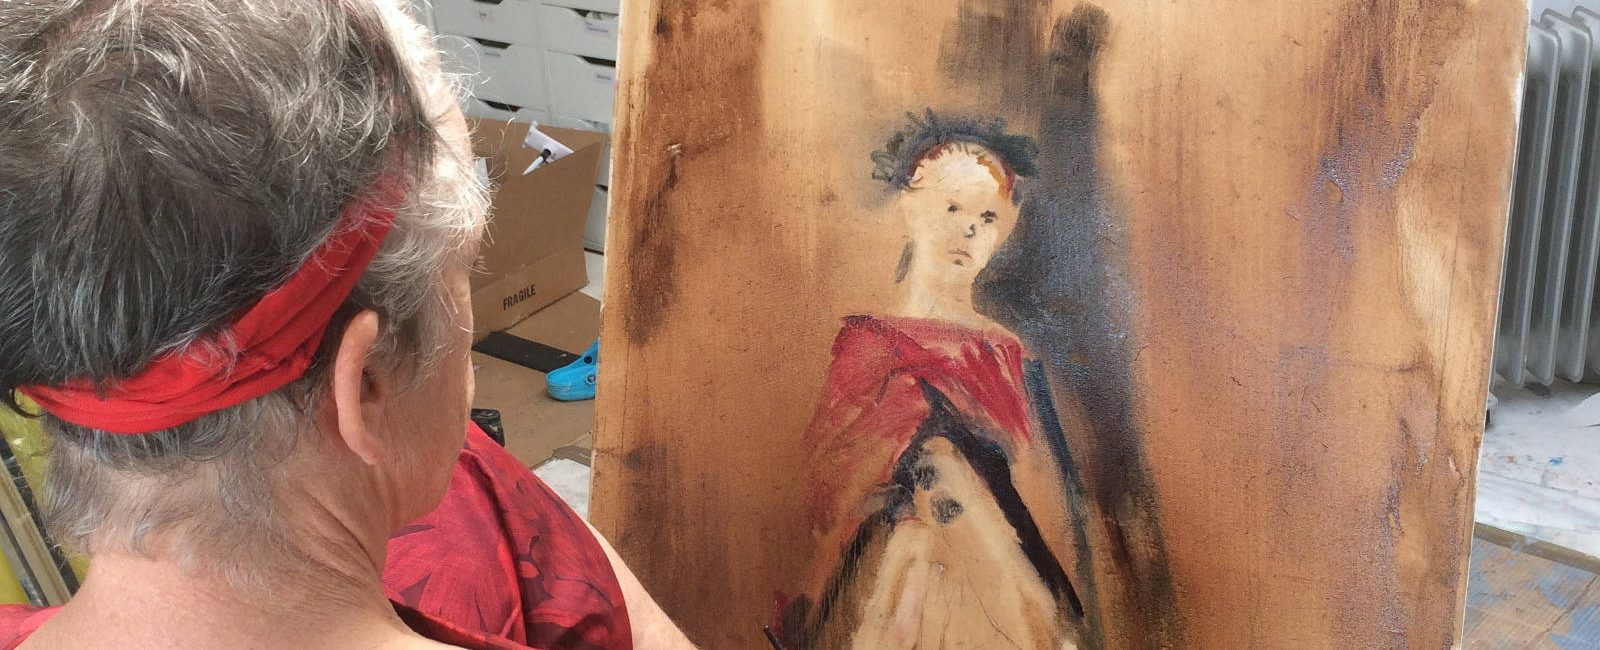 Visual artist Mary Duffy at work in her studio.